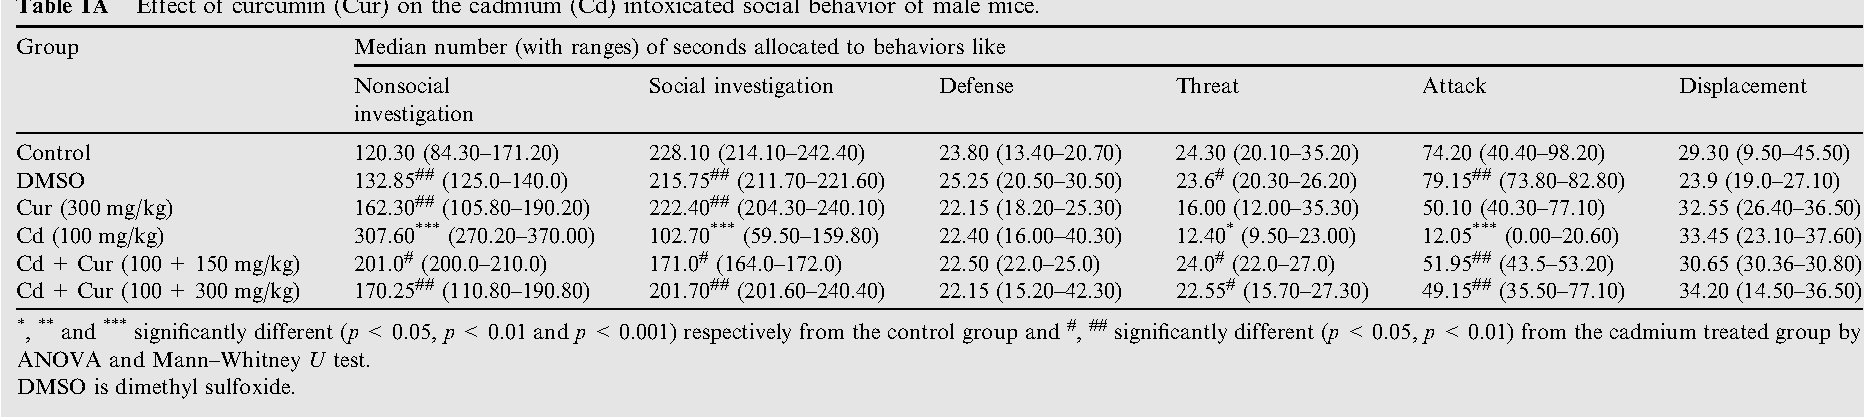 Table 1A Effect of curcumin (Cur) on the cadmium (Cd) intoxicated social behavior of male mice.